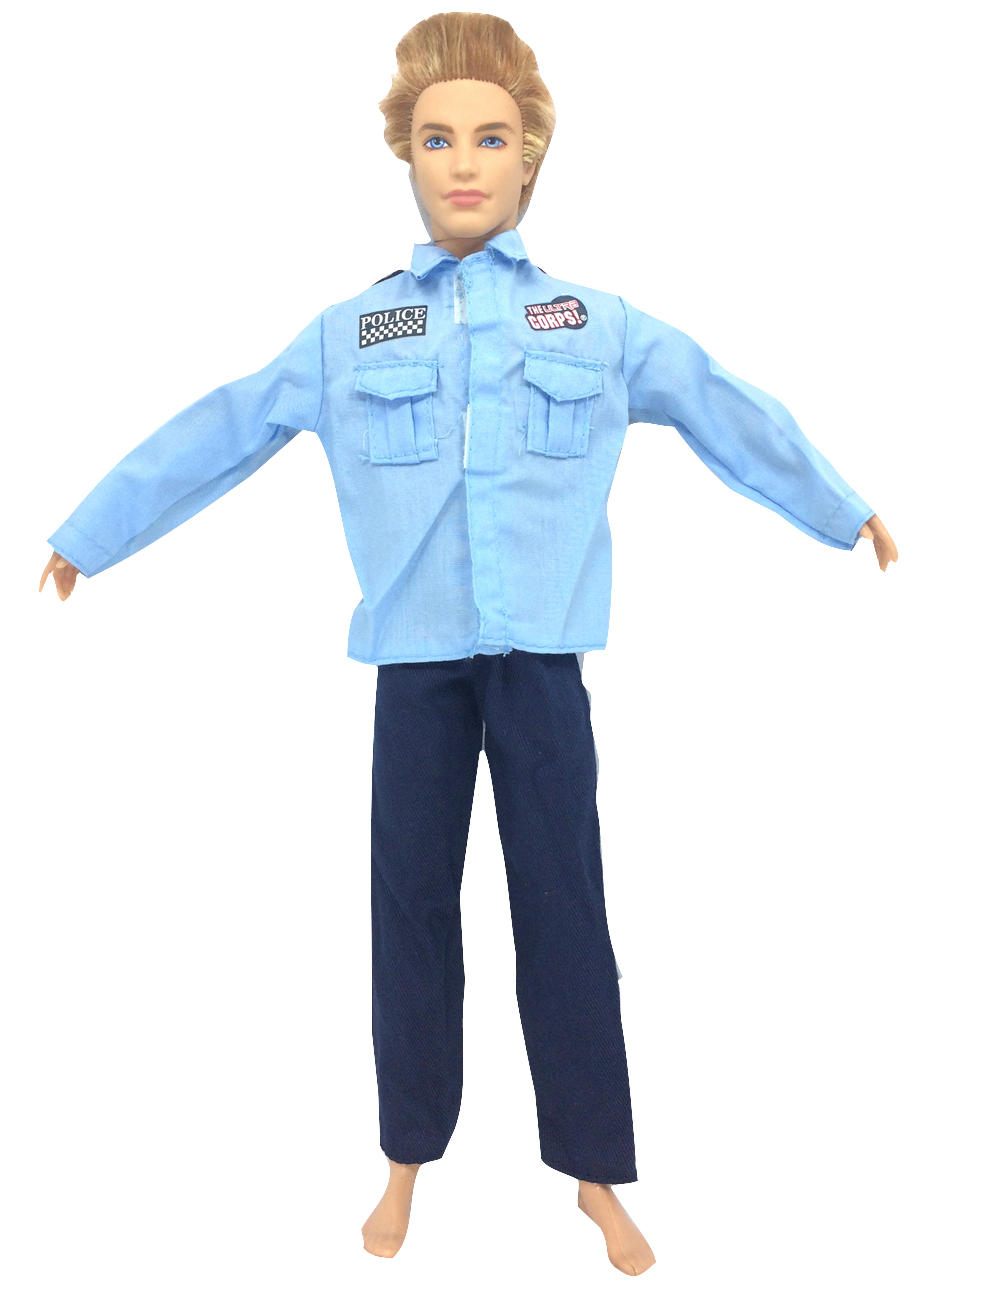 NK Authentic Doll Prince Garments Fight Police Uniform Cop Outfit For Barbie Boy Male Ken Doll For Lanard  1/6 Soldier  Greatest Present